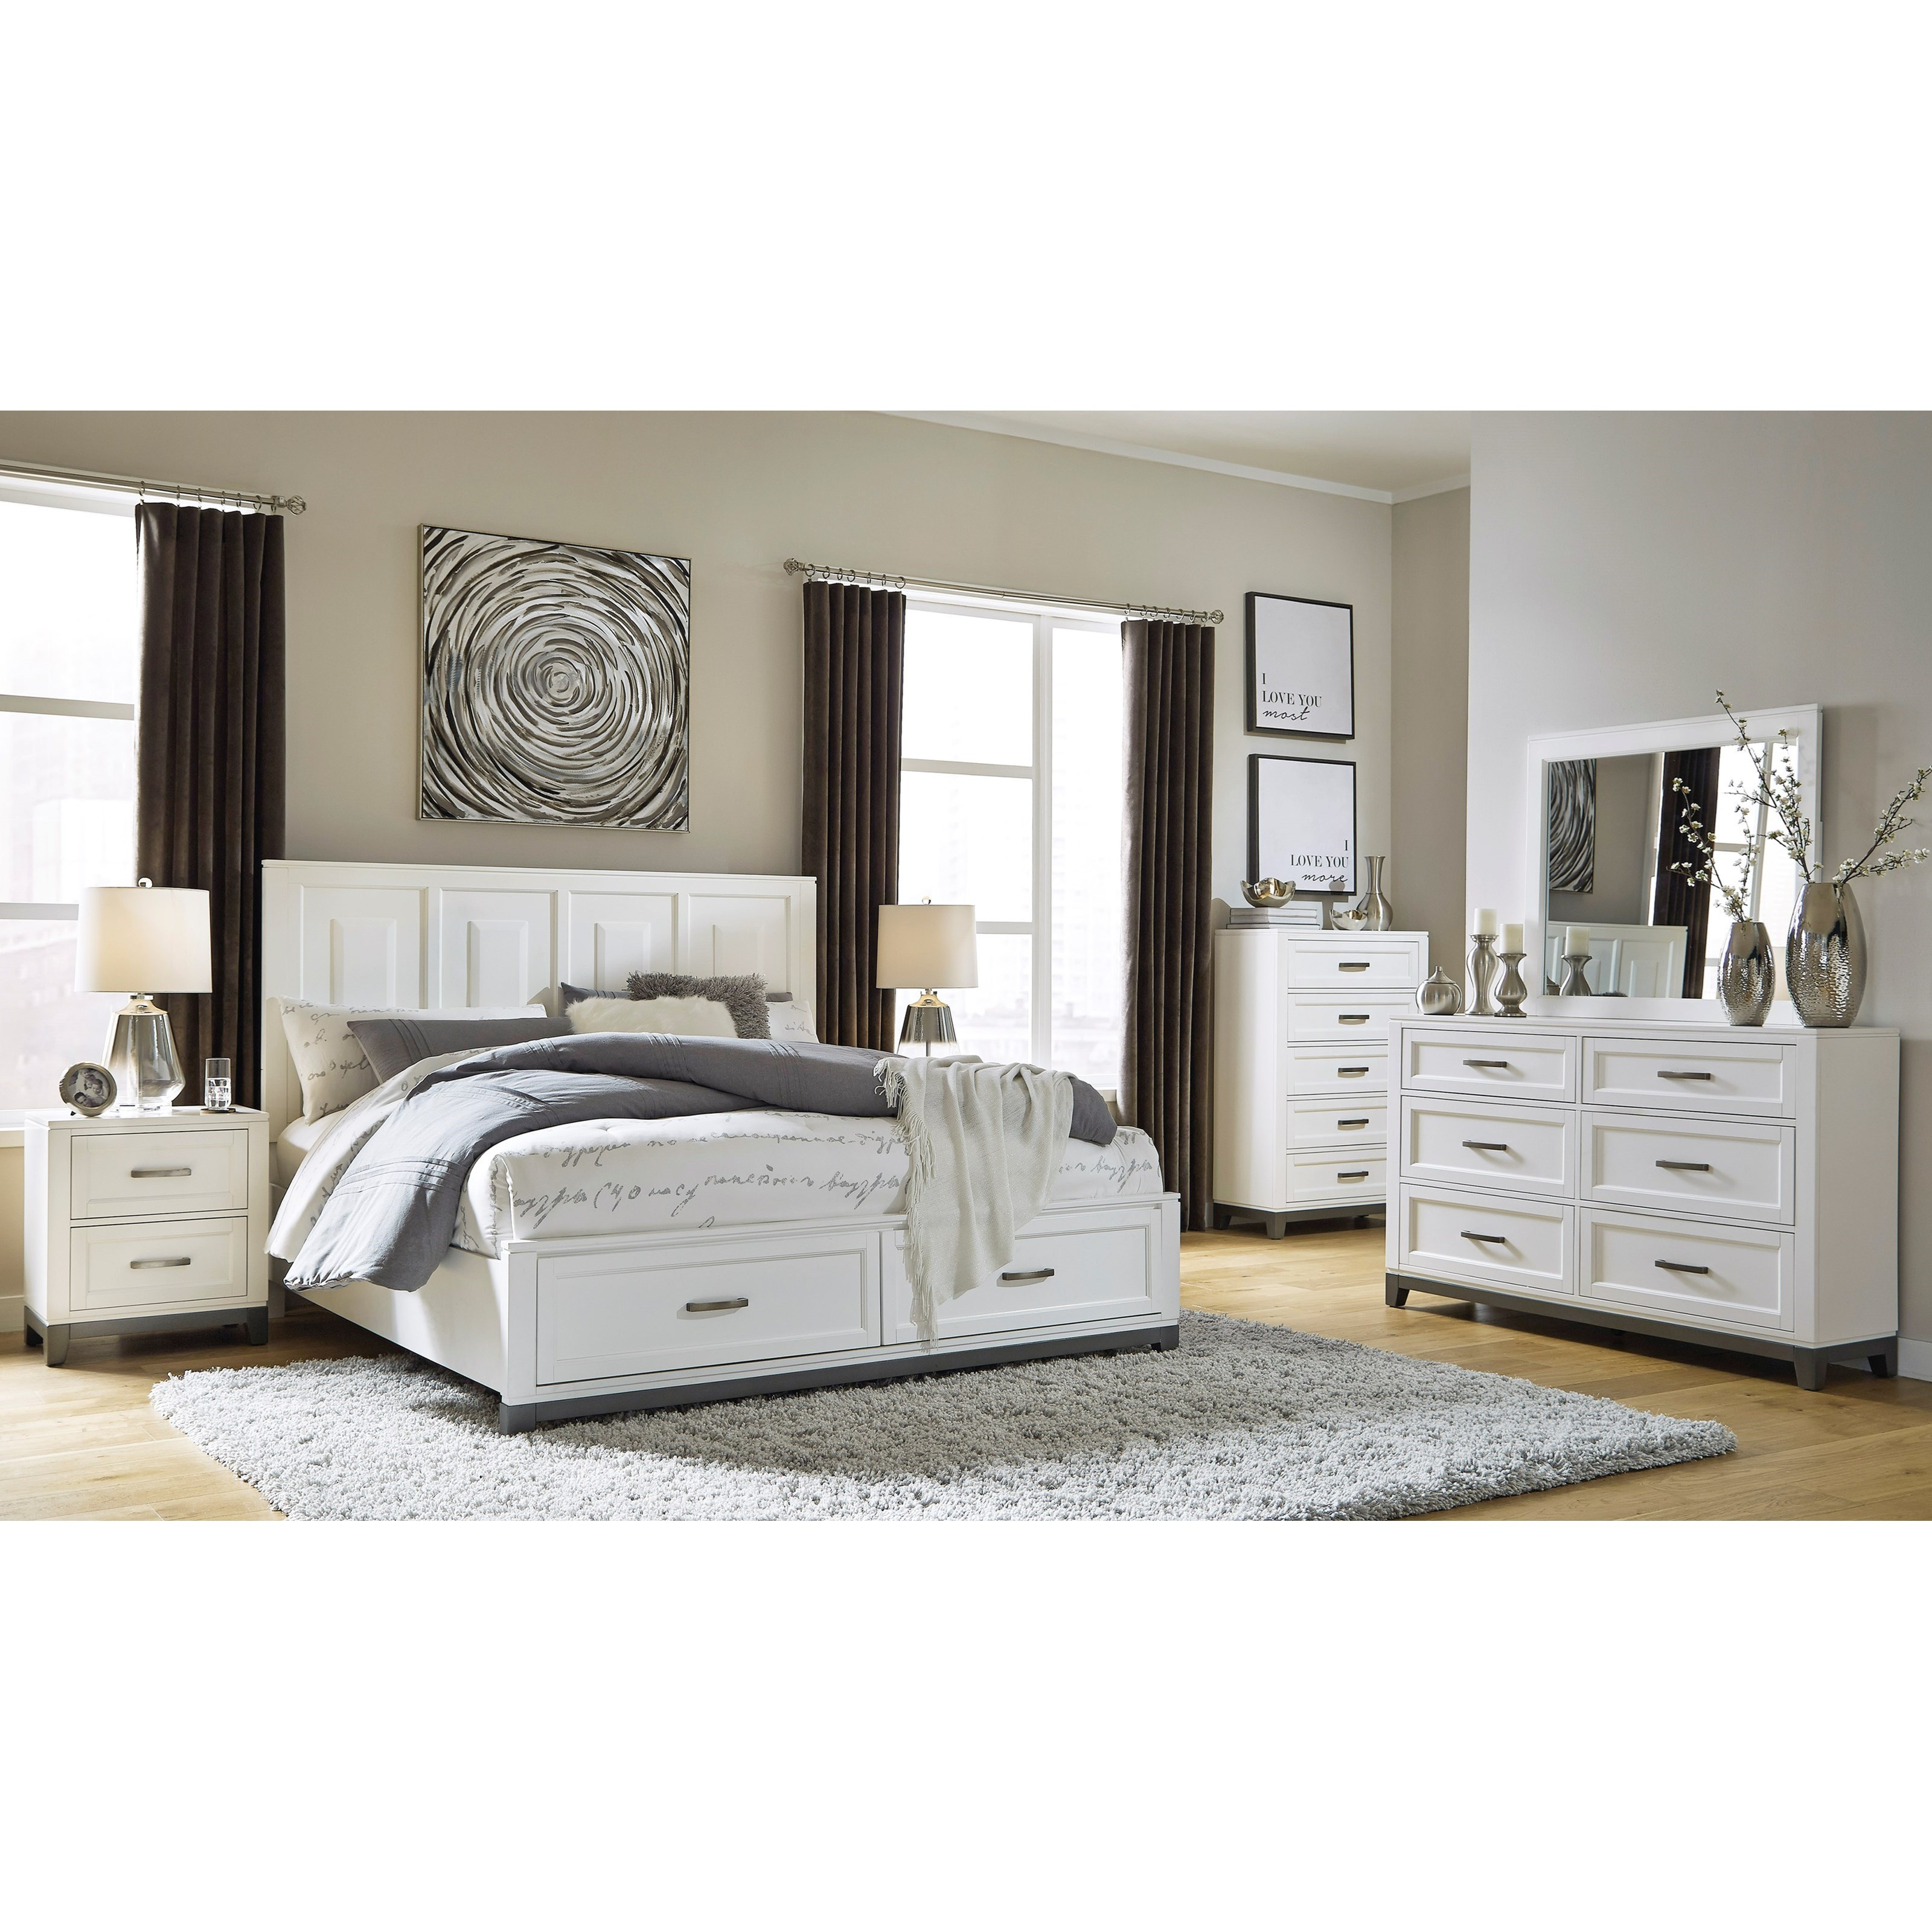 Brynburg Queen Bedroom Group by Benchcraft at Walker's Furniture